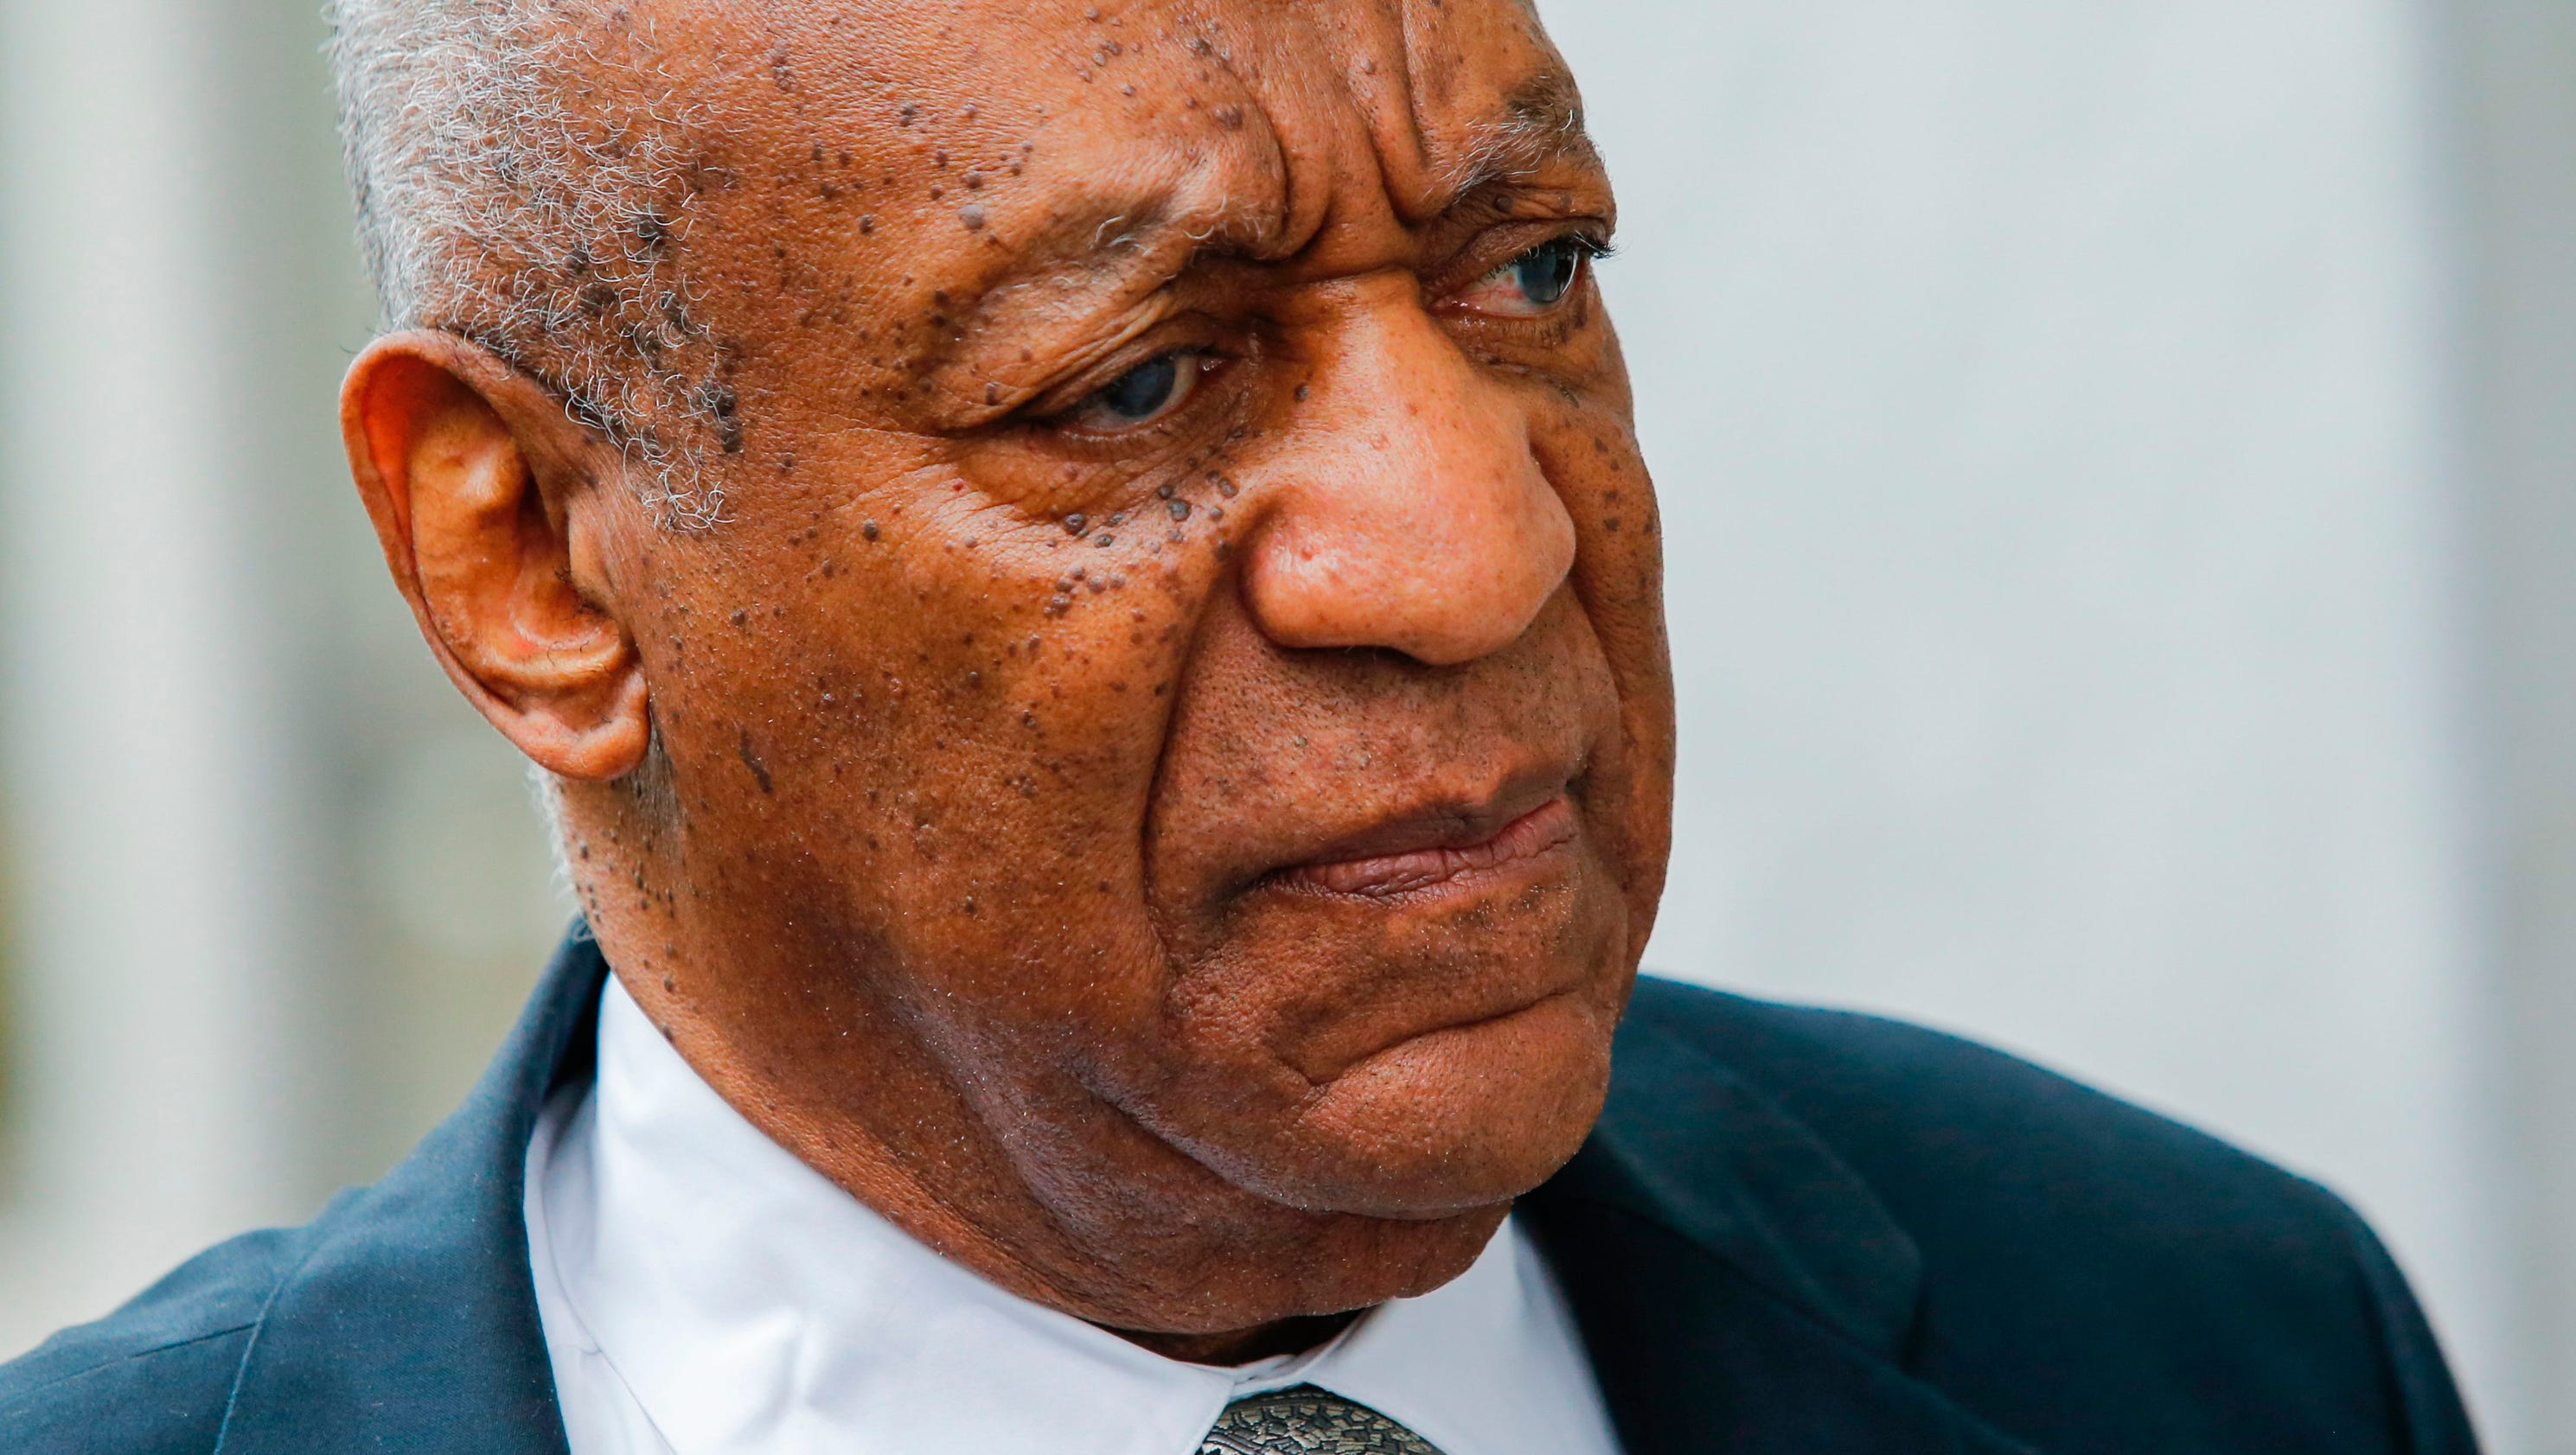 Bill Cosby lawyer: No town hall speaking tour while second trial looms